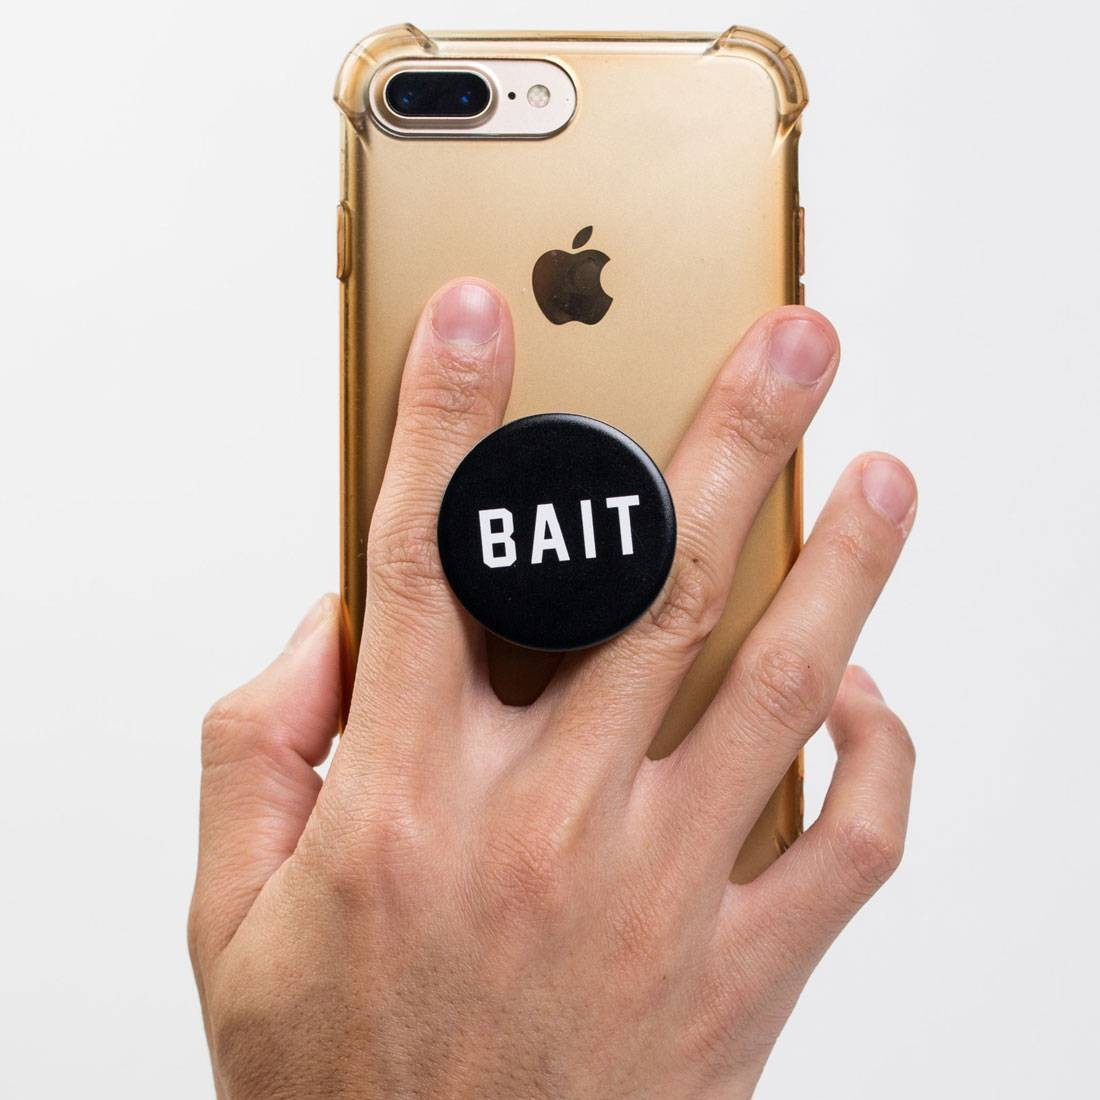 BAIT x Popsockets Phone Grip (black)